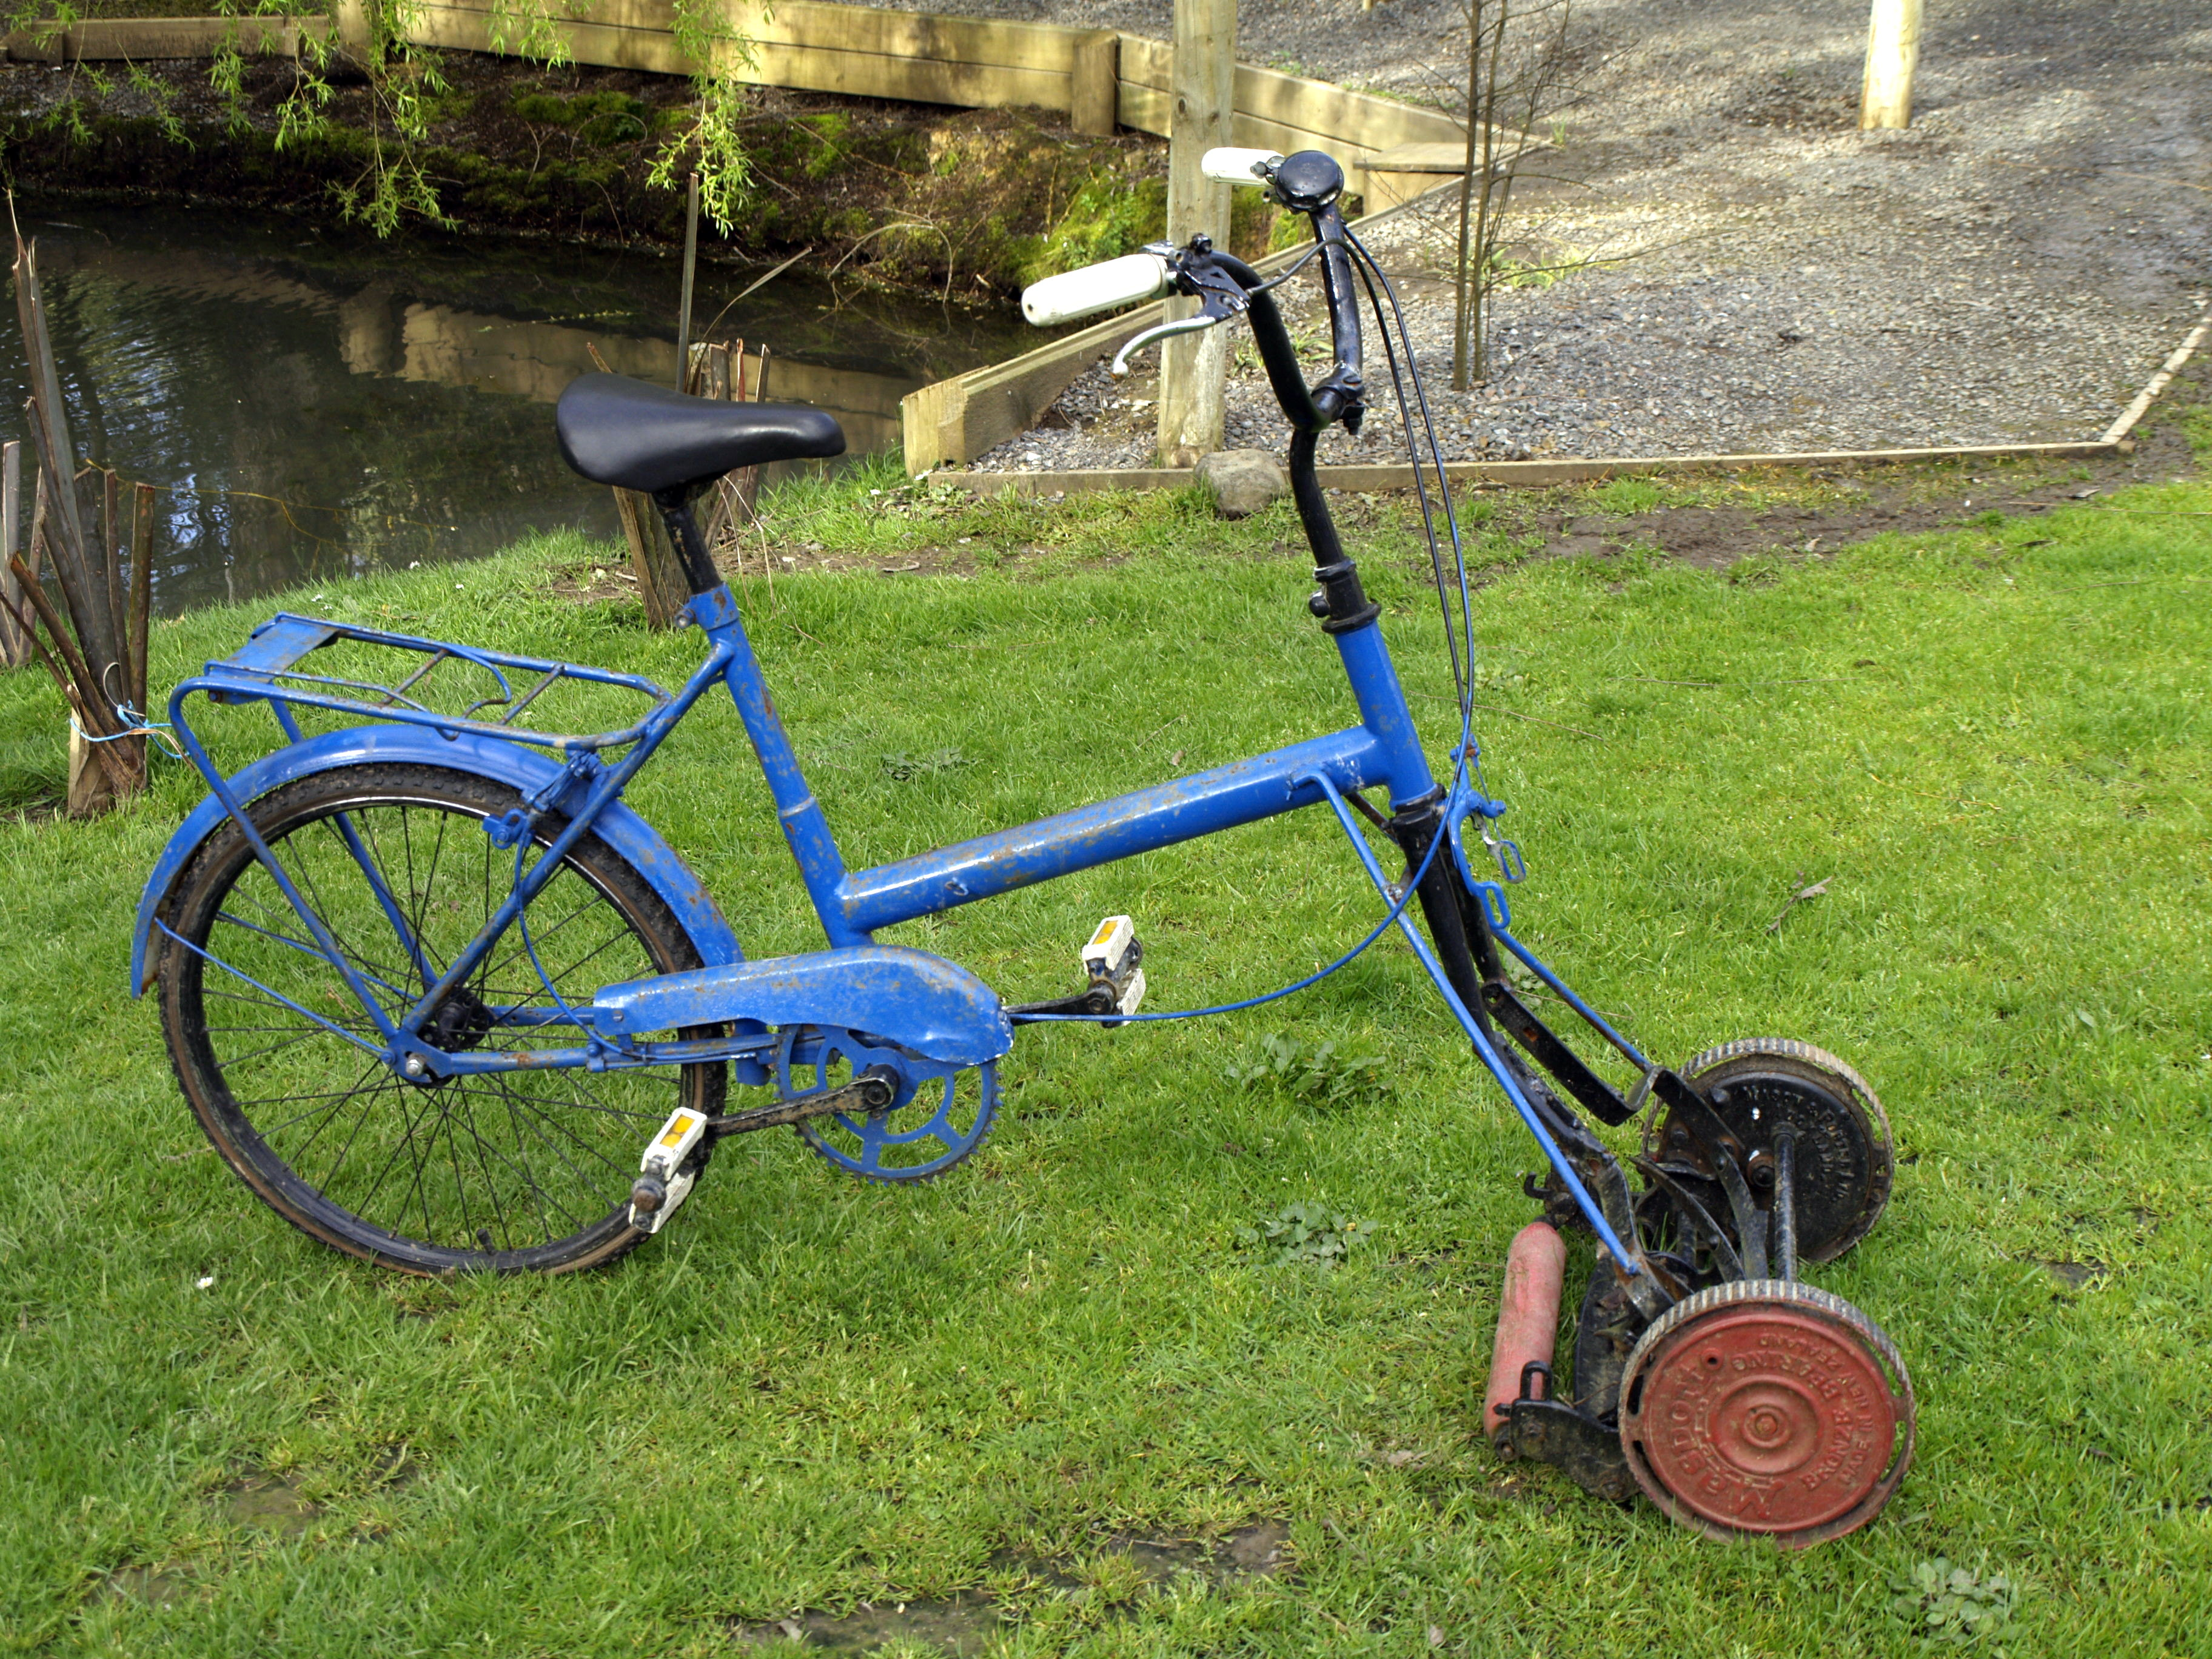 File Cylinder Mower Bicycle Jpg Wikimedia Commons